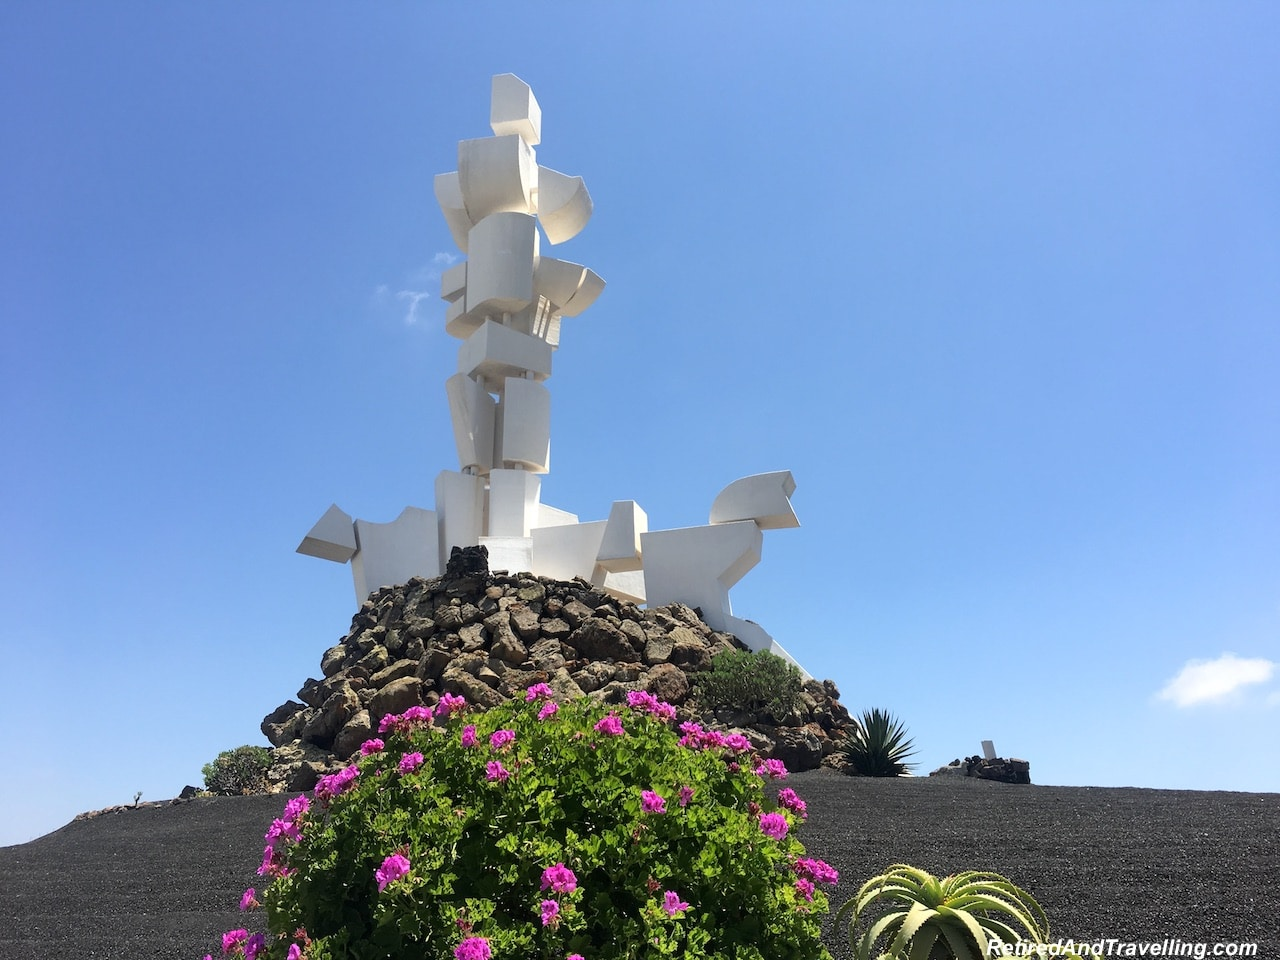 Statues Lanzarote - Visit the Canary Islands.jpg